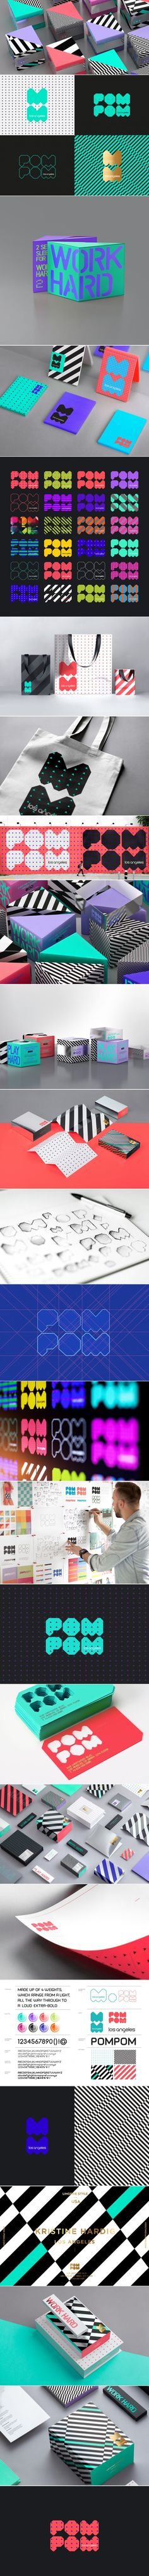 POM POM — The Dieline | Packaging & Branding Design & Innovation News